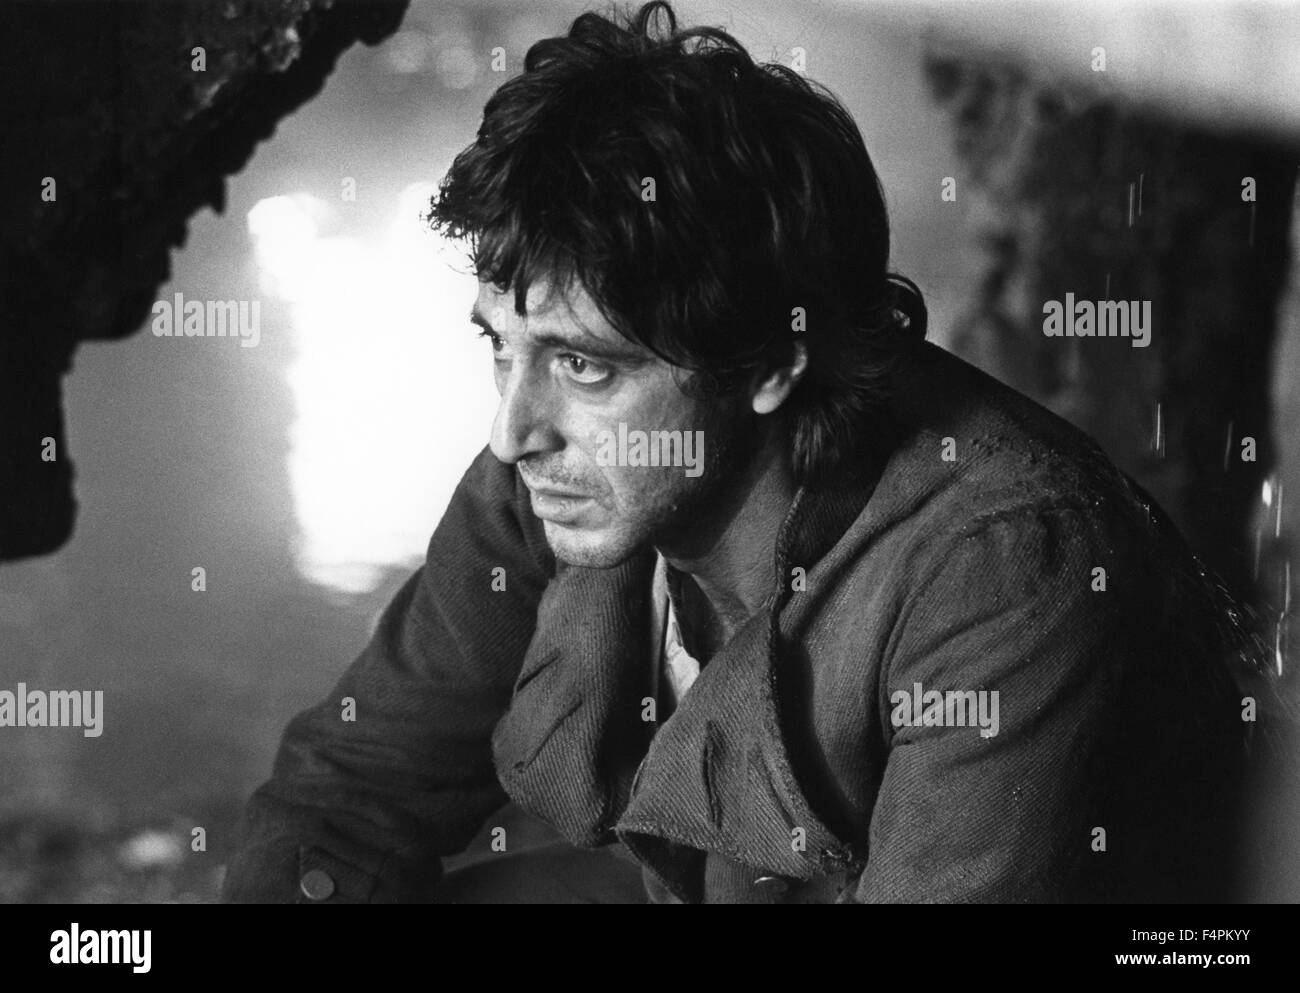 Al Pacino / Revolution / 1985 directed by Hugh Hudson   [Warner Bros. Pictures] Stock Photo